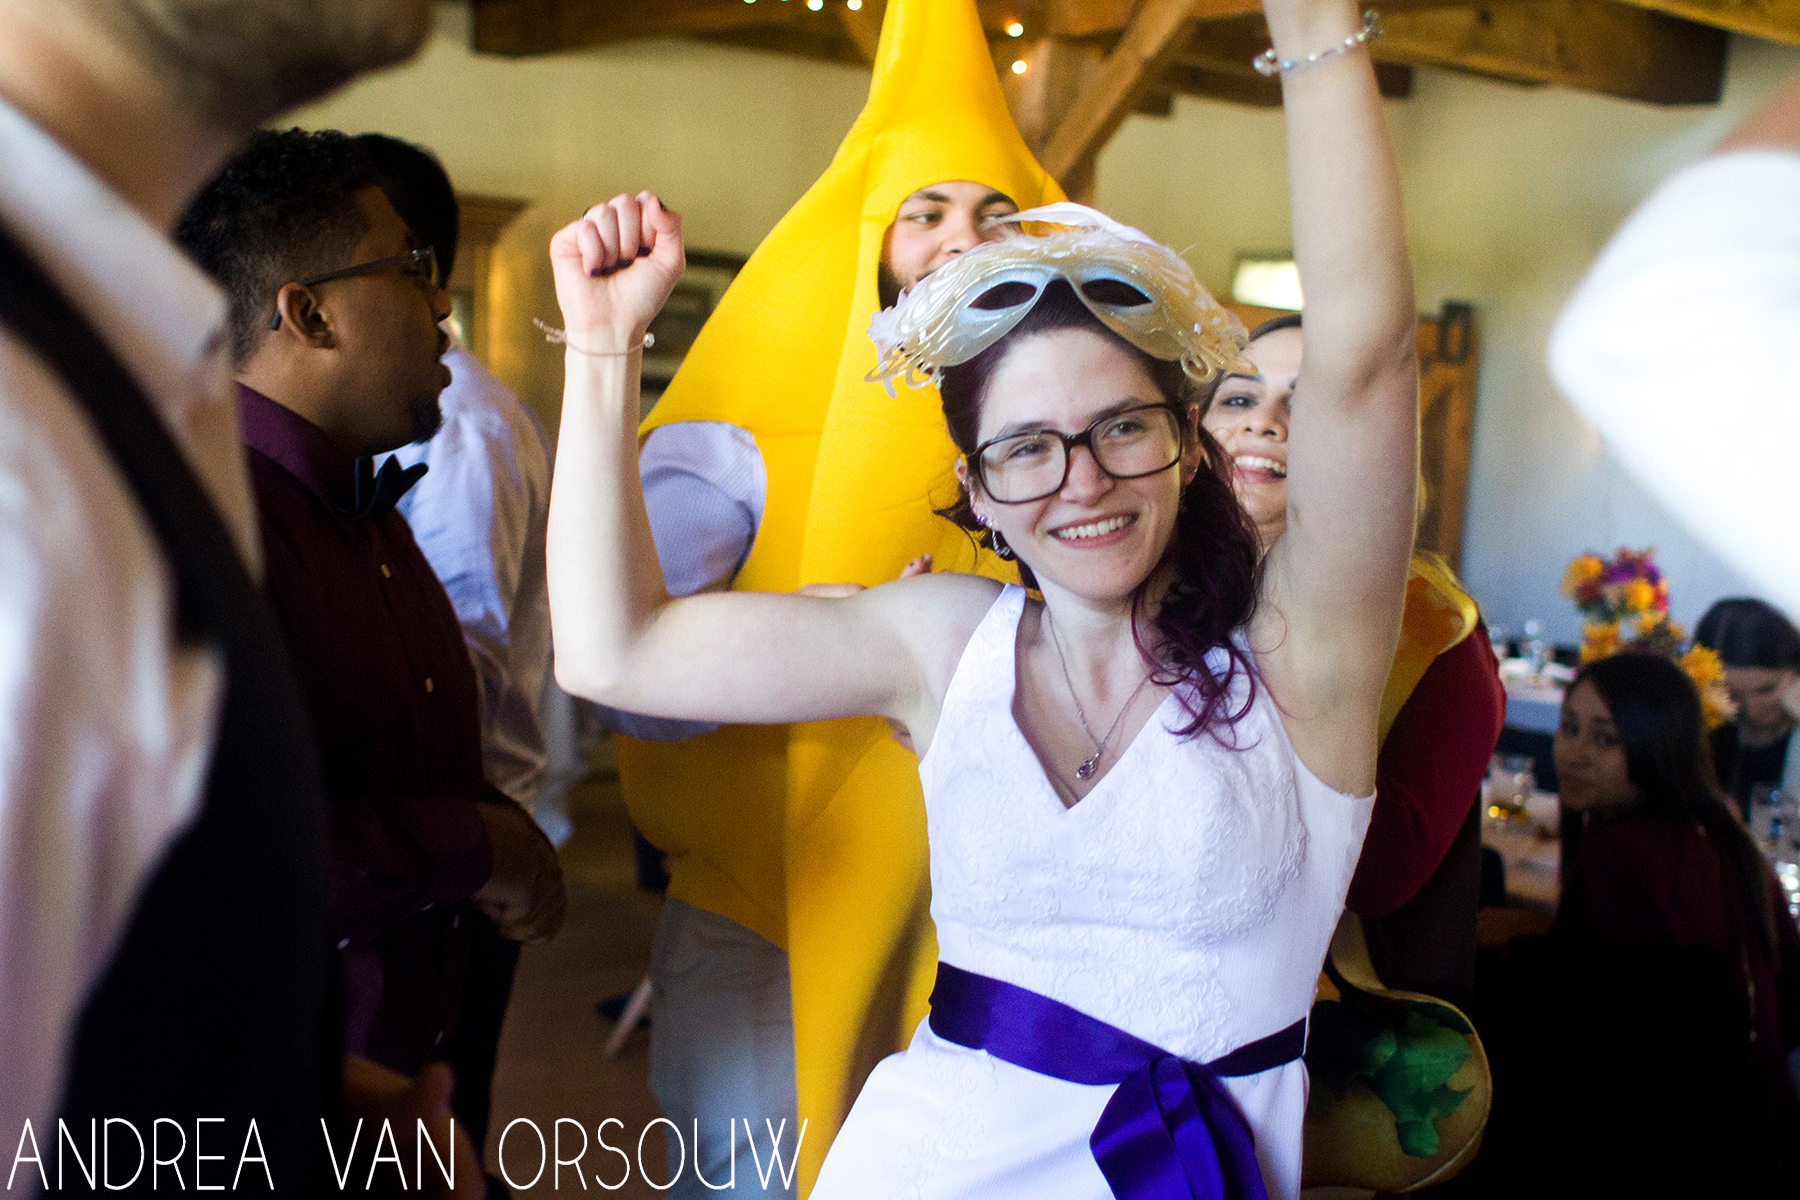 masquerade_wedding_dance_banana_costume.jpg